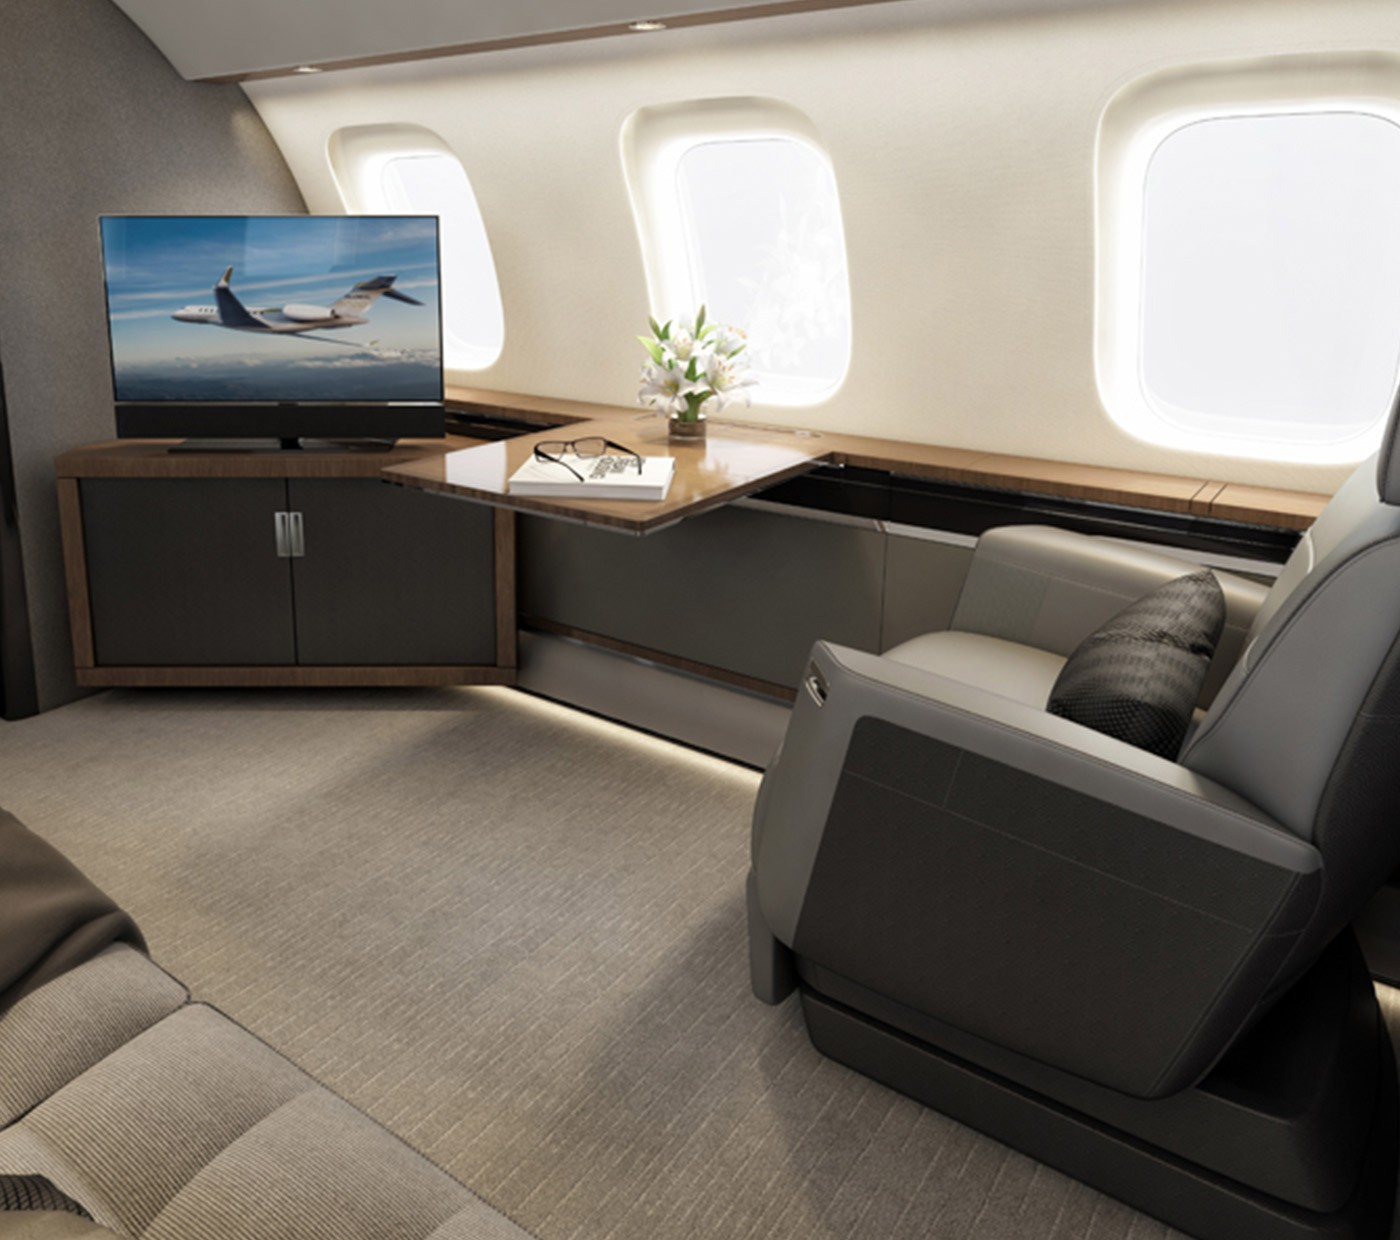 Bombardier private jet charter Bombardier business jet Bombardier corporate jet Bombardier charter2 - Bombardier private jet builder Bombardier private charter and Bombardier jet broker